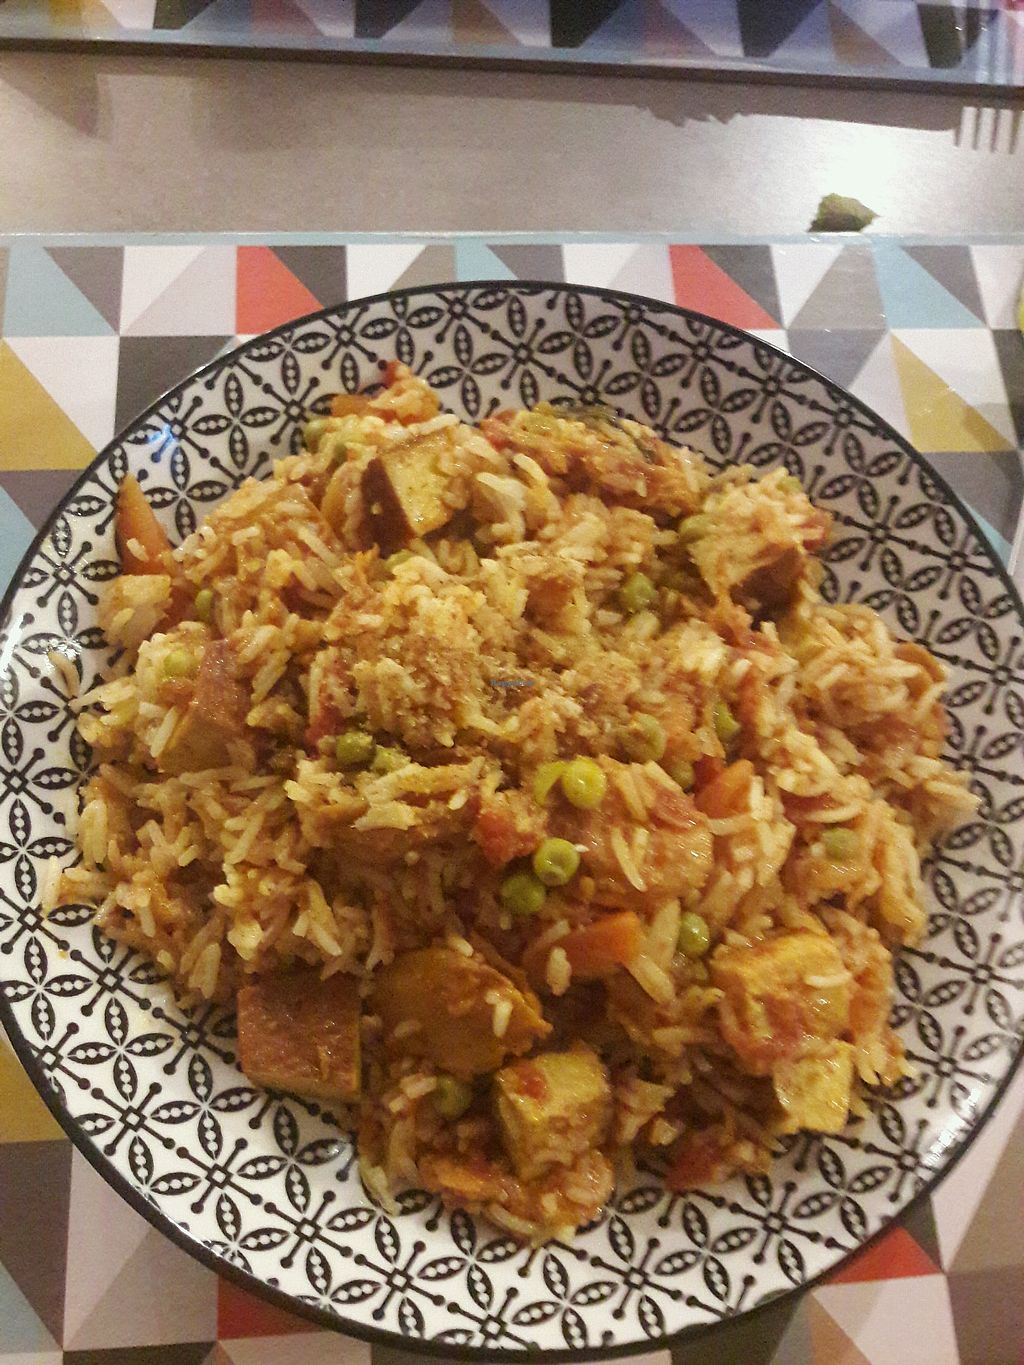 """Photo of L'Eden Sans Gluten  by <a href=""""/members/profile/SportifVegan"""">SportifVegan</a> <br/>Paella <br/> May 14, 2018  - <a href='/contact/abuse/image/76725/399678'>Report</a>"""